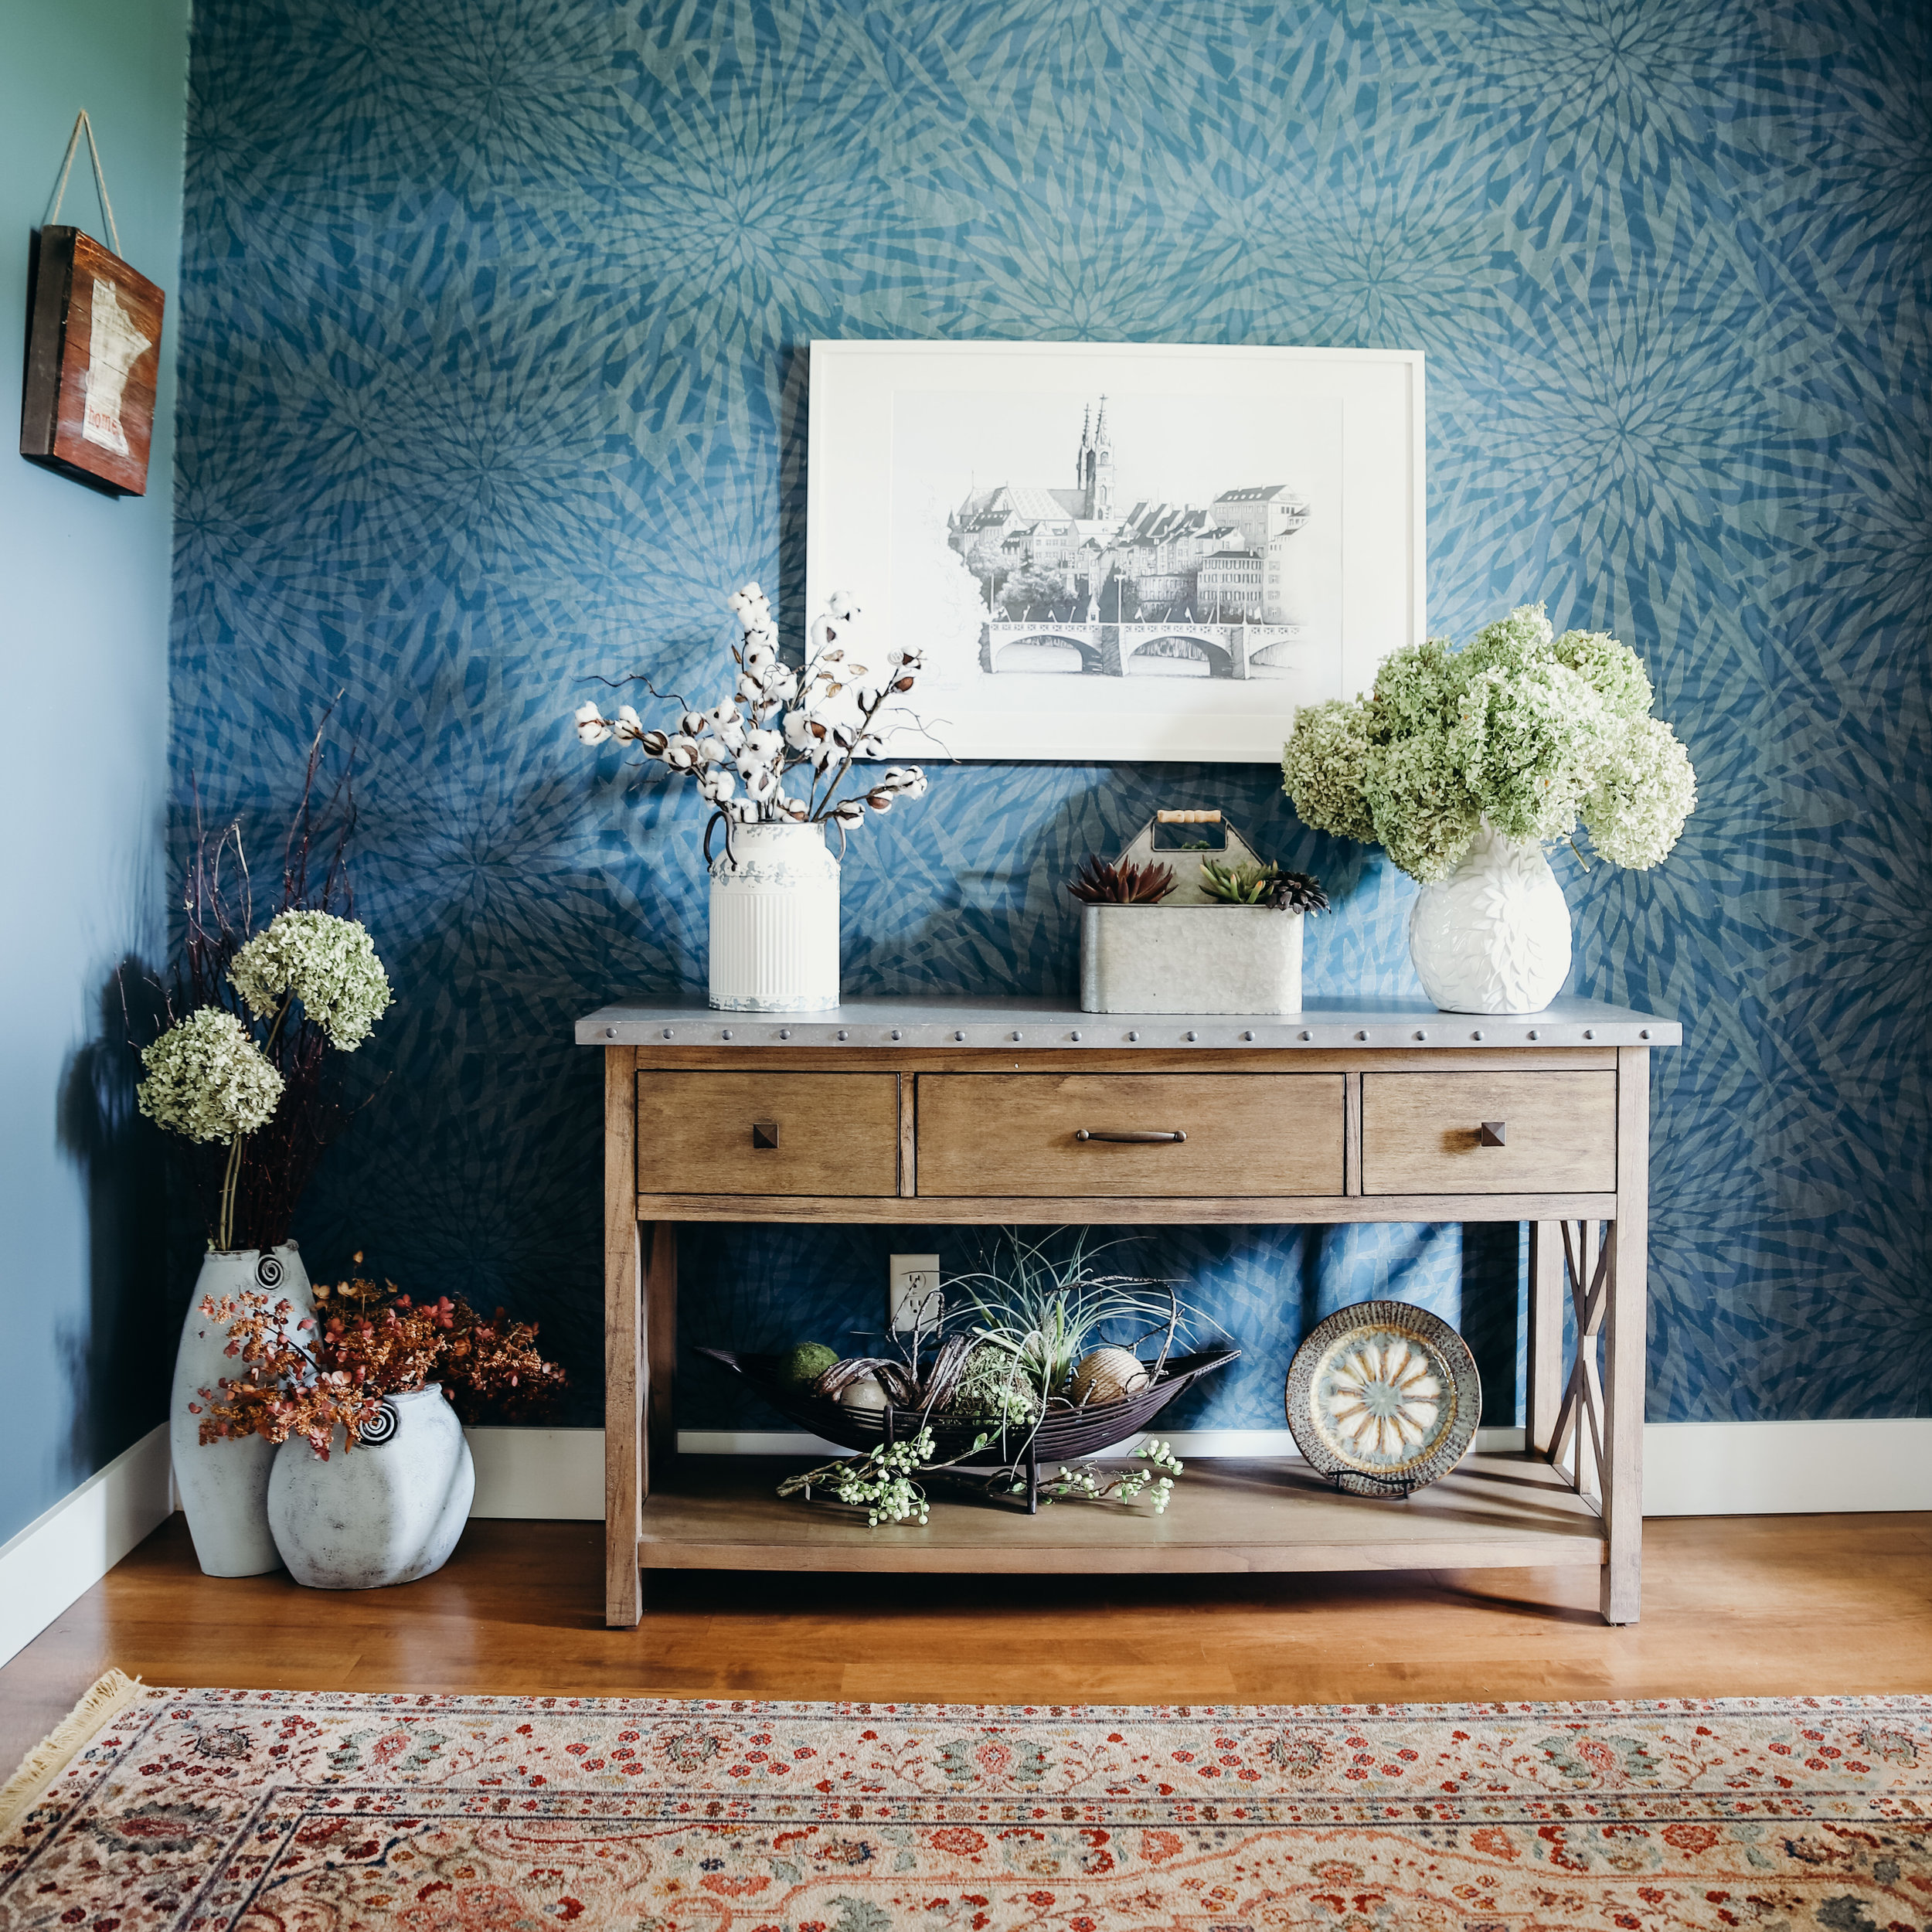 We made this entryway extra welcoming with large print wallpaper along a wall that seamlessly transitions into the paint color.